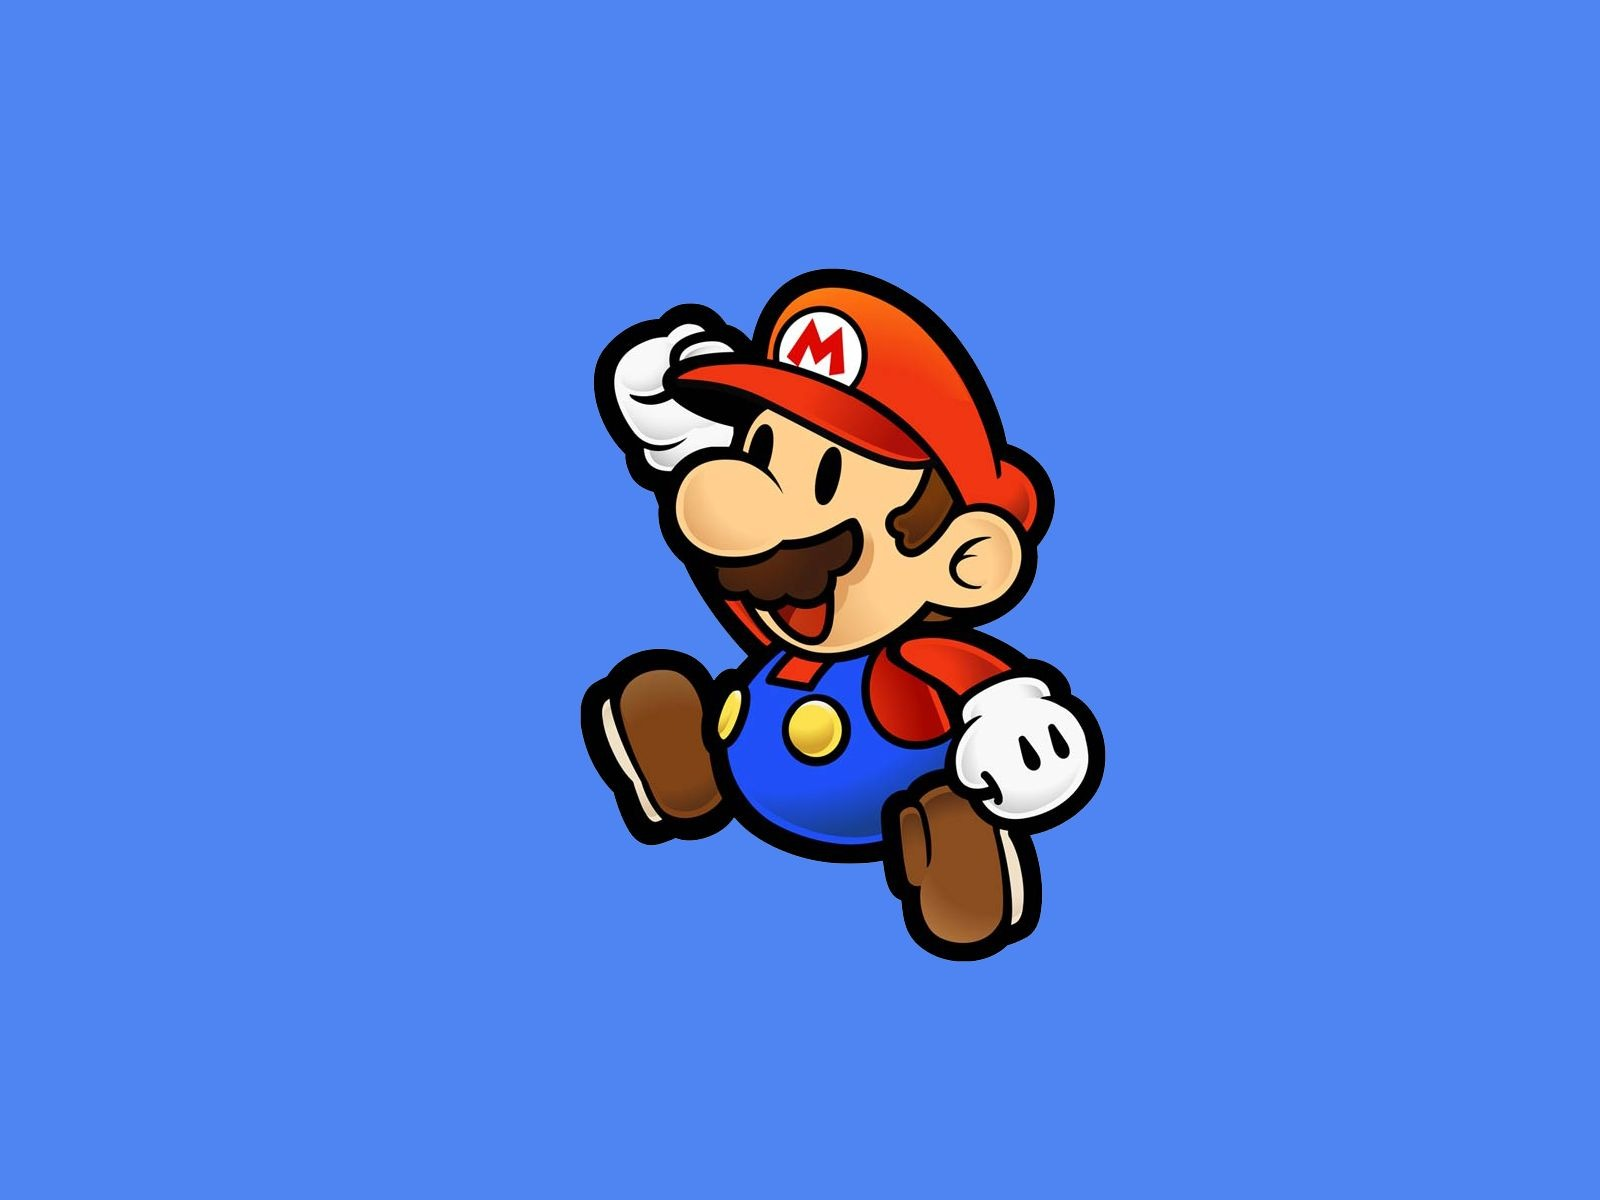 Mario Wallpaper Cartoons Anime Animated Wallpapers In Jpg Format For